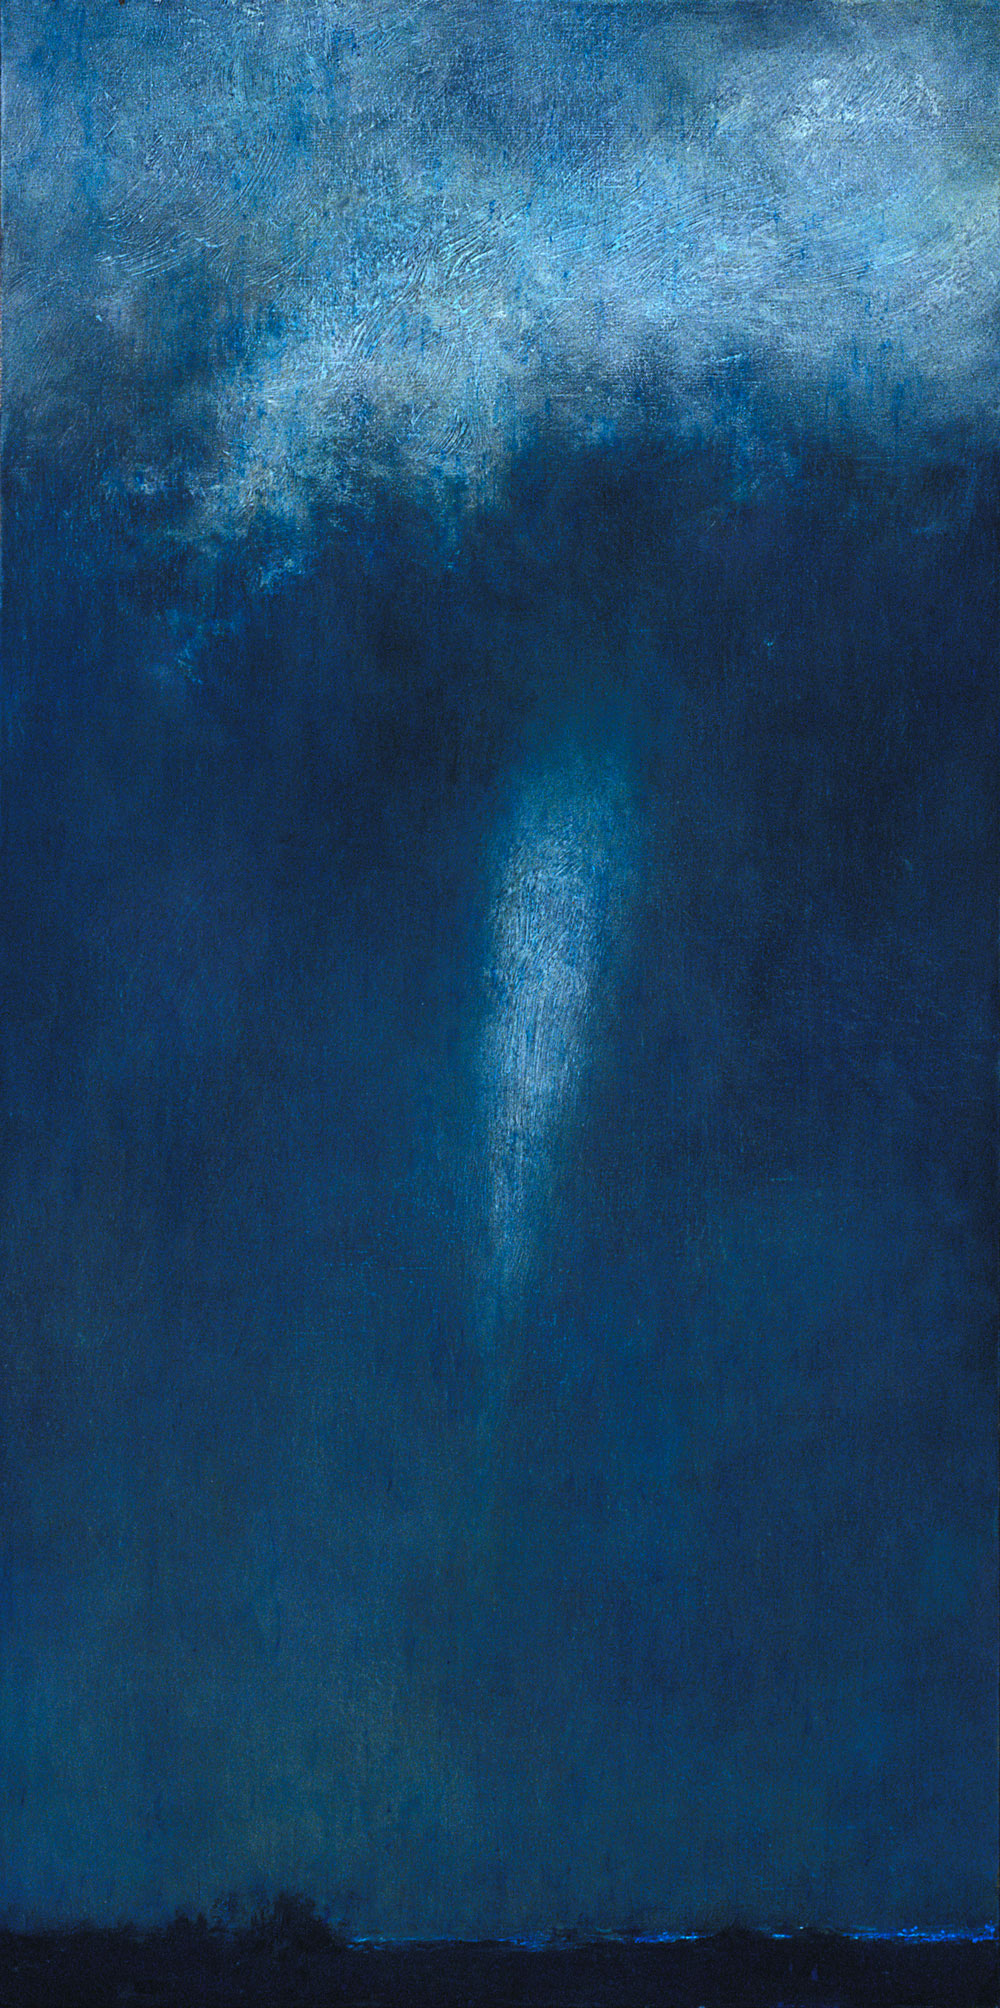 By Moonlight, 48 x 24, oil on canvas, 2005